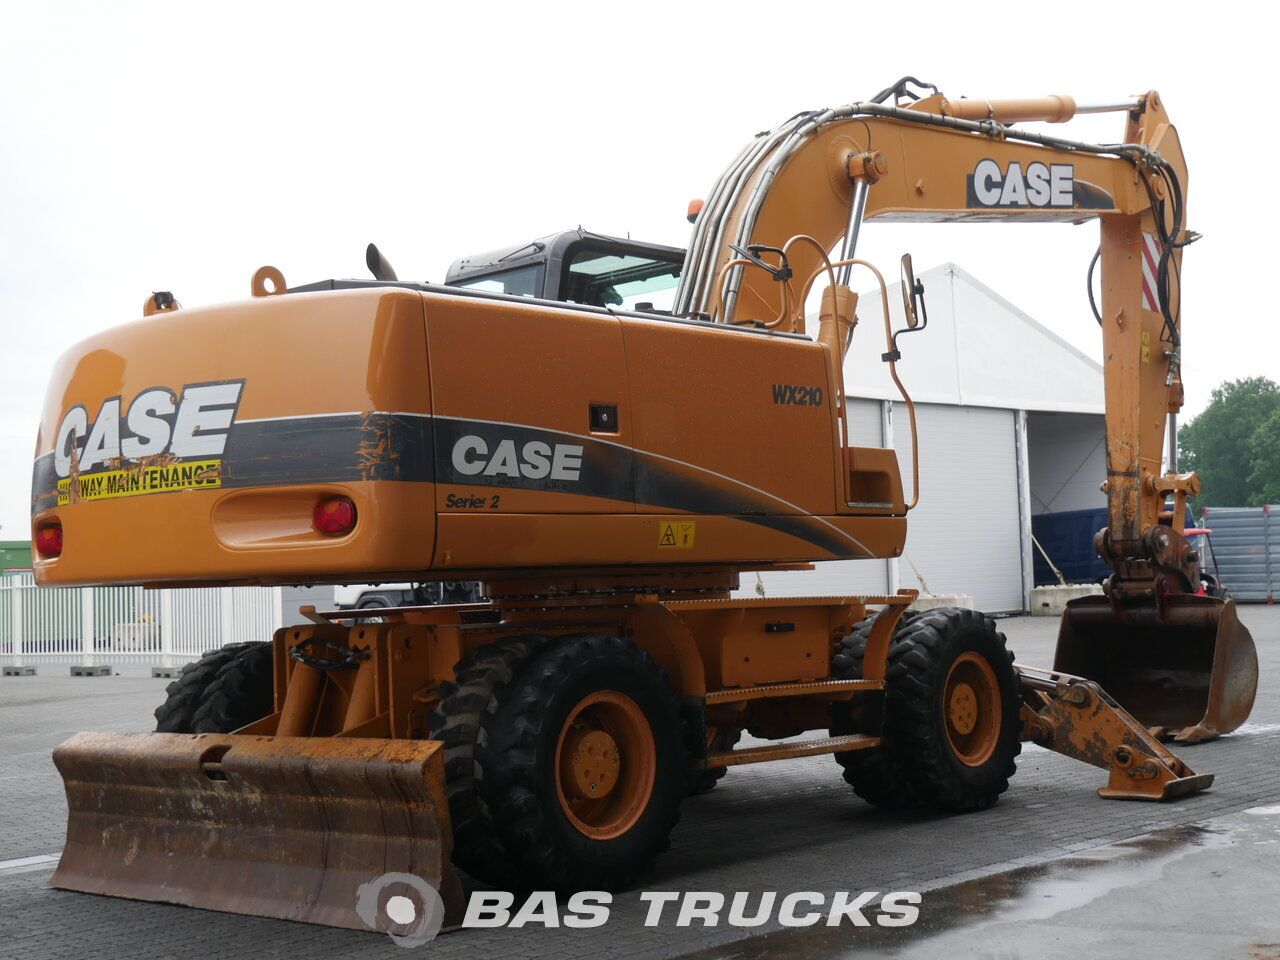 photo of Used Construction equipment Case WX210 4X4 2008